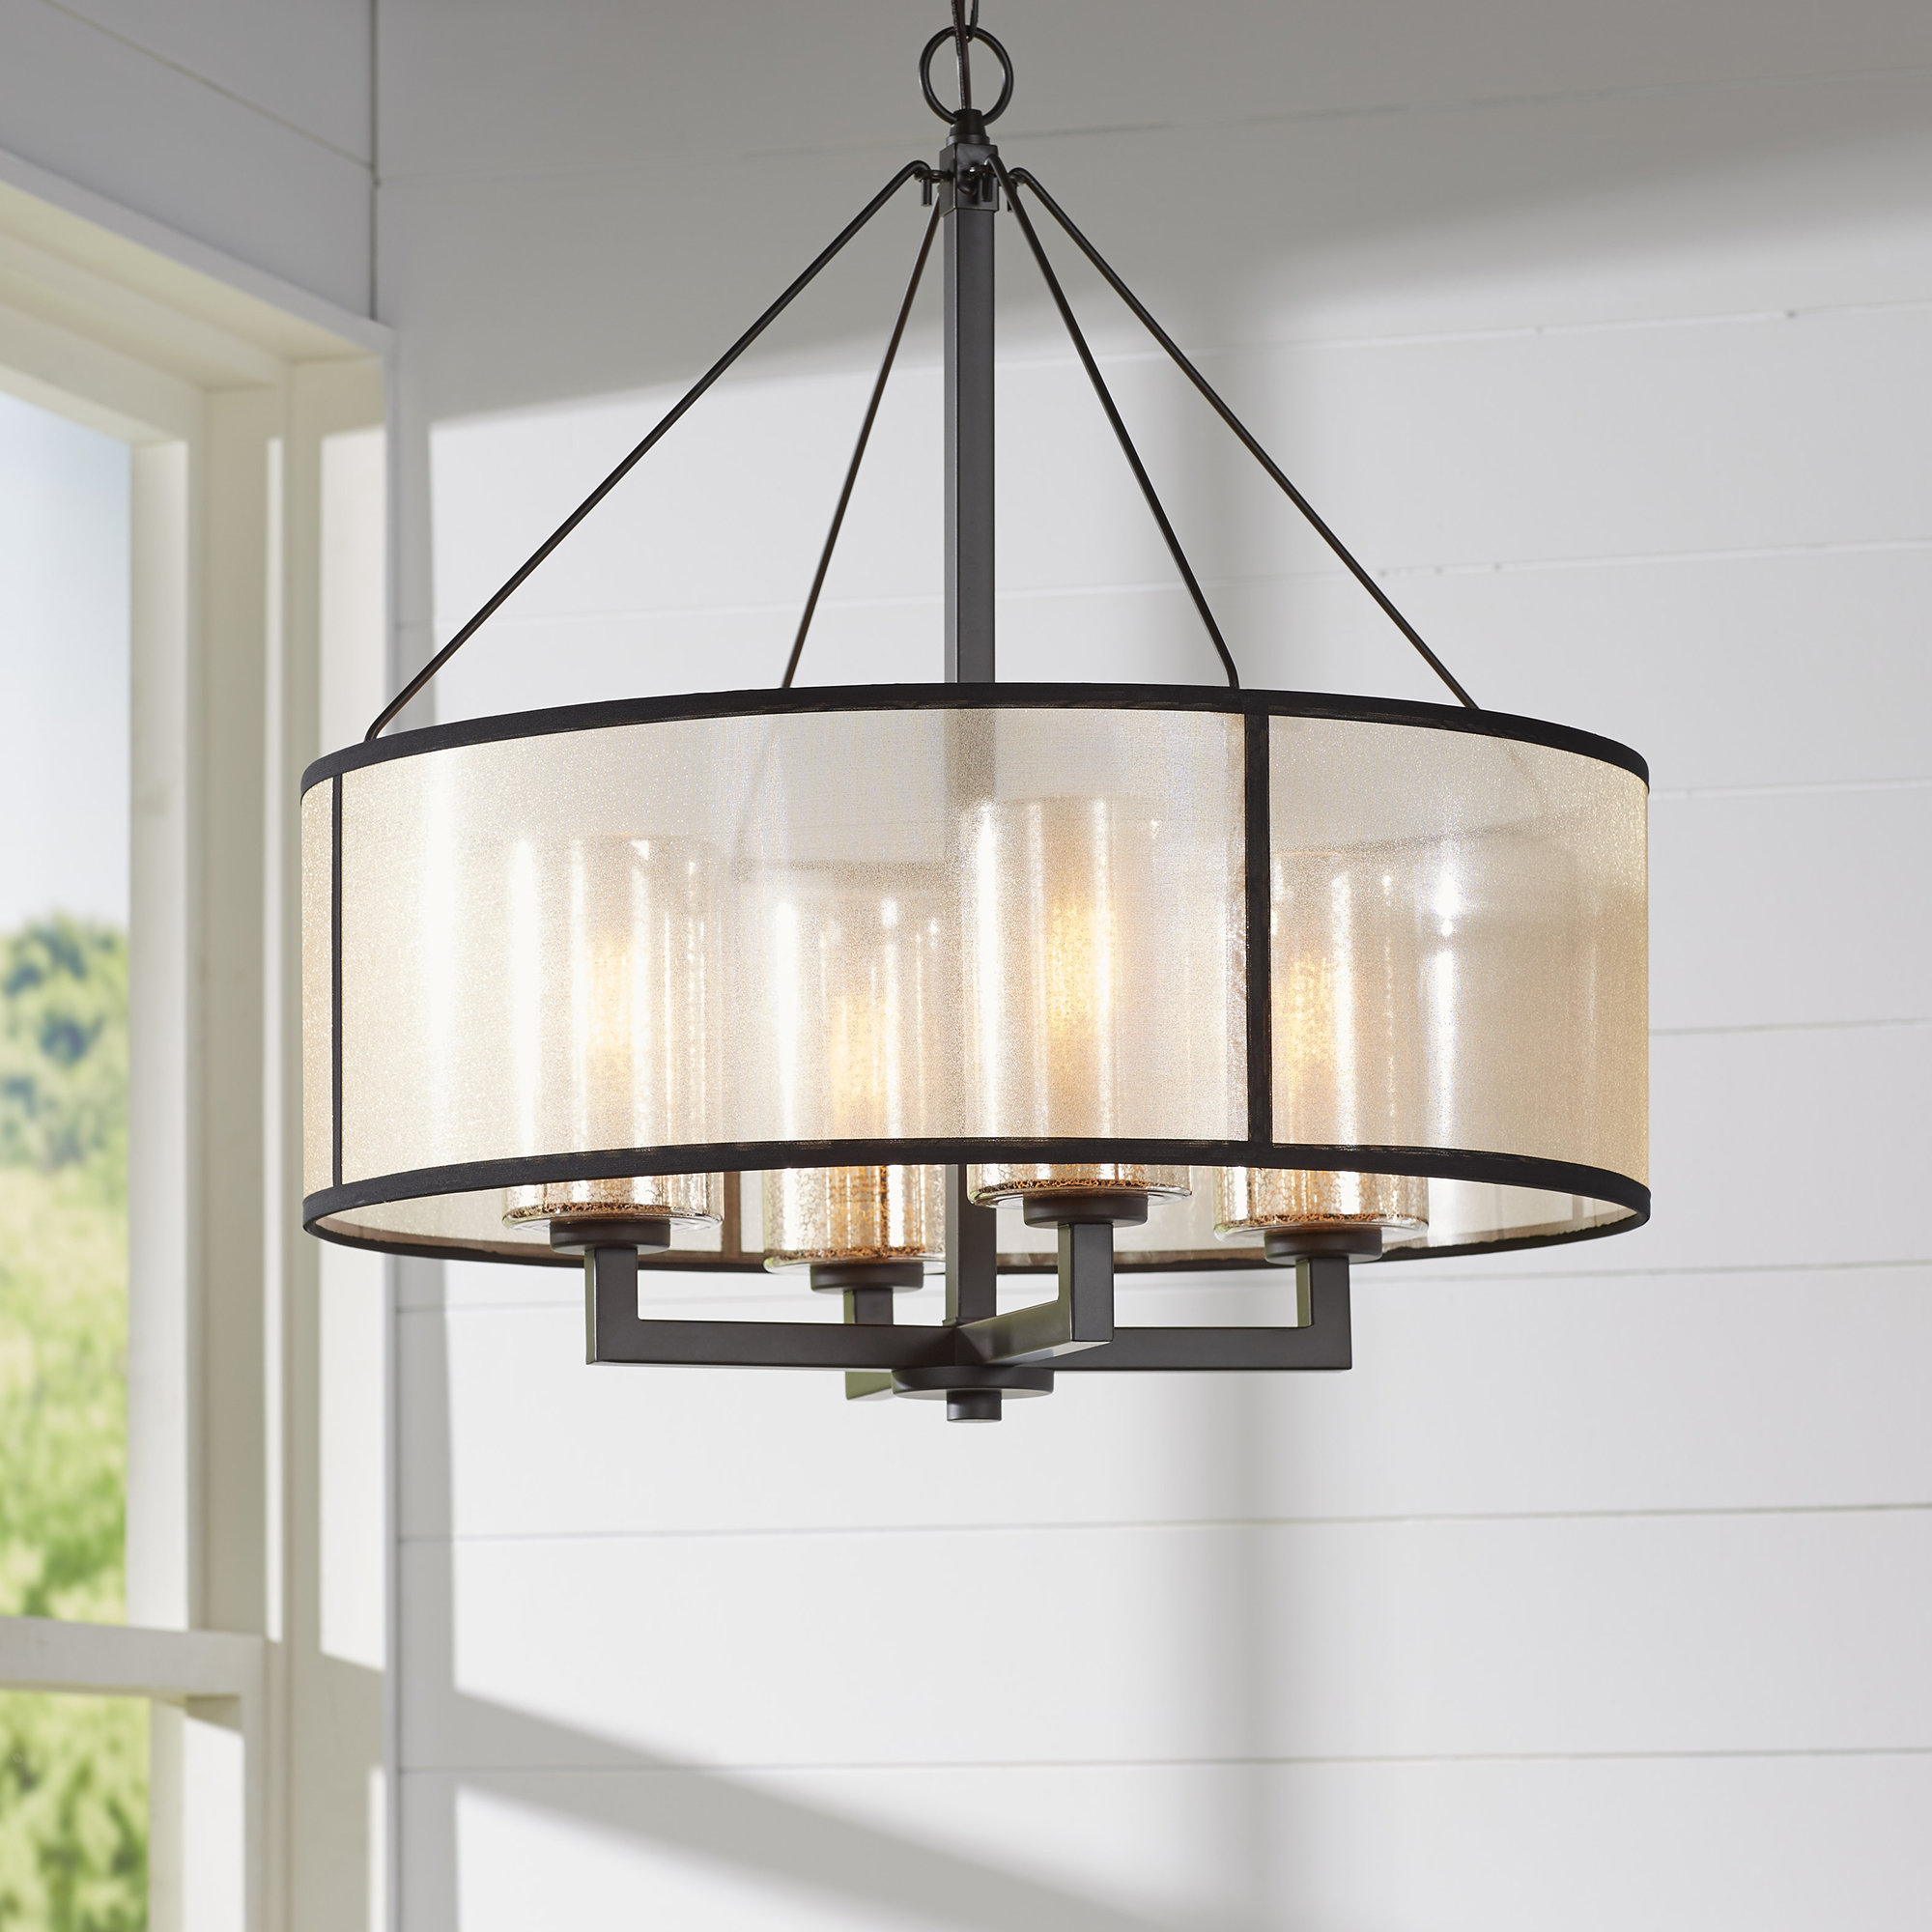 Dailey 4-Light Drum Chandelier with regard to Wightman Drum Chandeliers (Image 12 of 30)